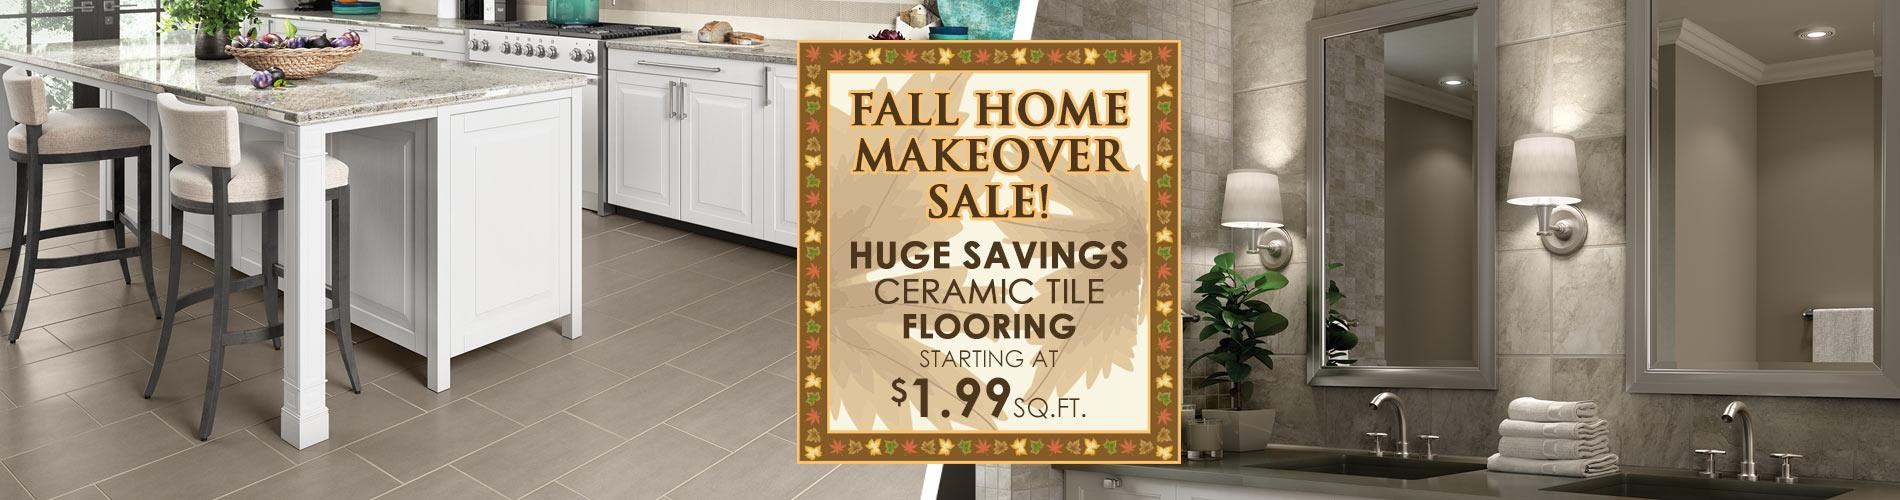 Fall Home Makeover Sale! Huge Savings - Ceramic Tile Flooring - Starting at $1.99 SQ. FT. at Murley's Floor Covering LLC!